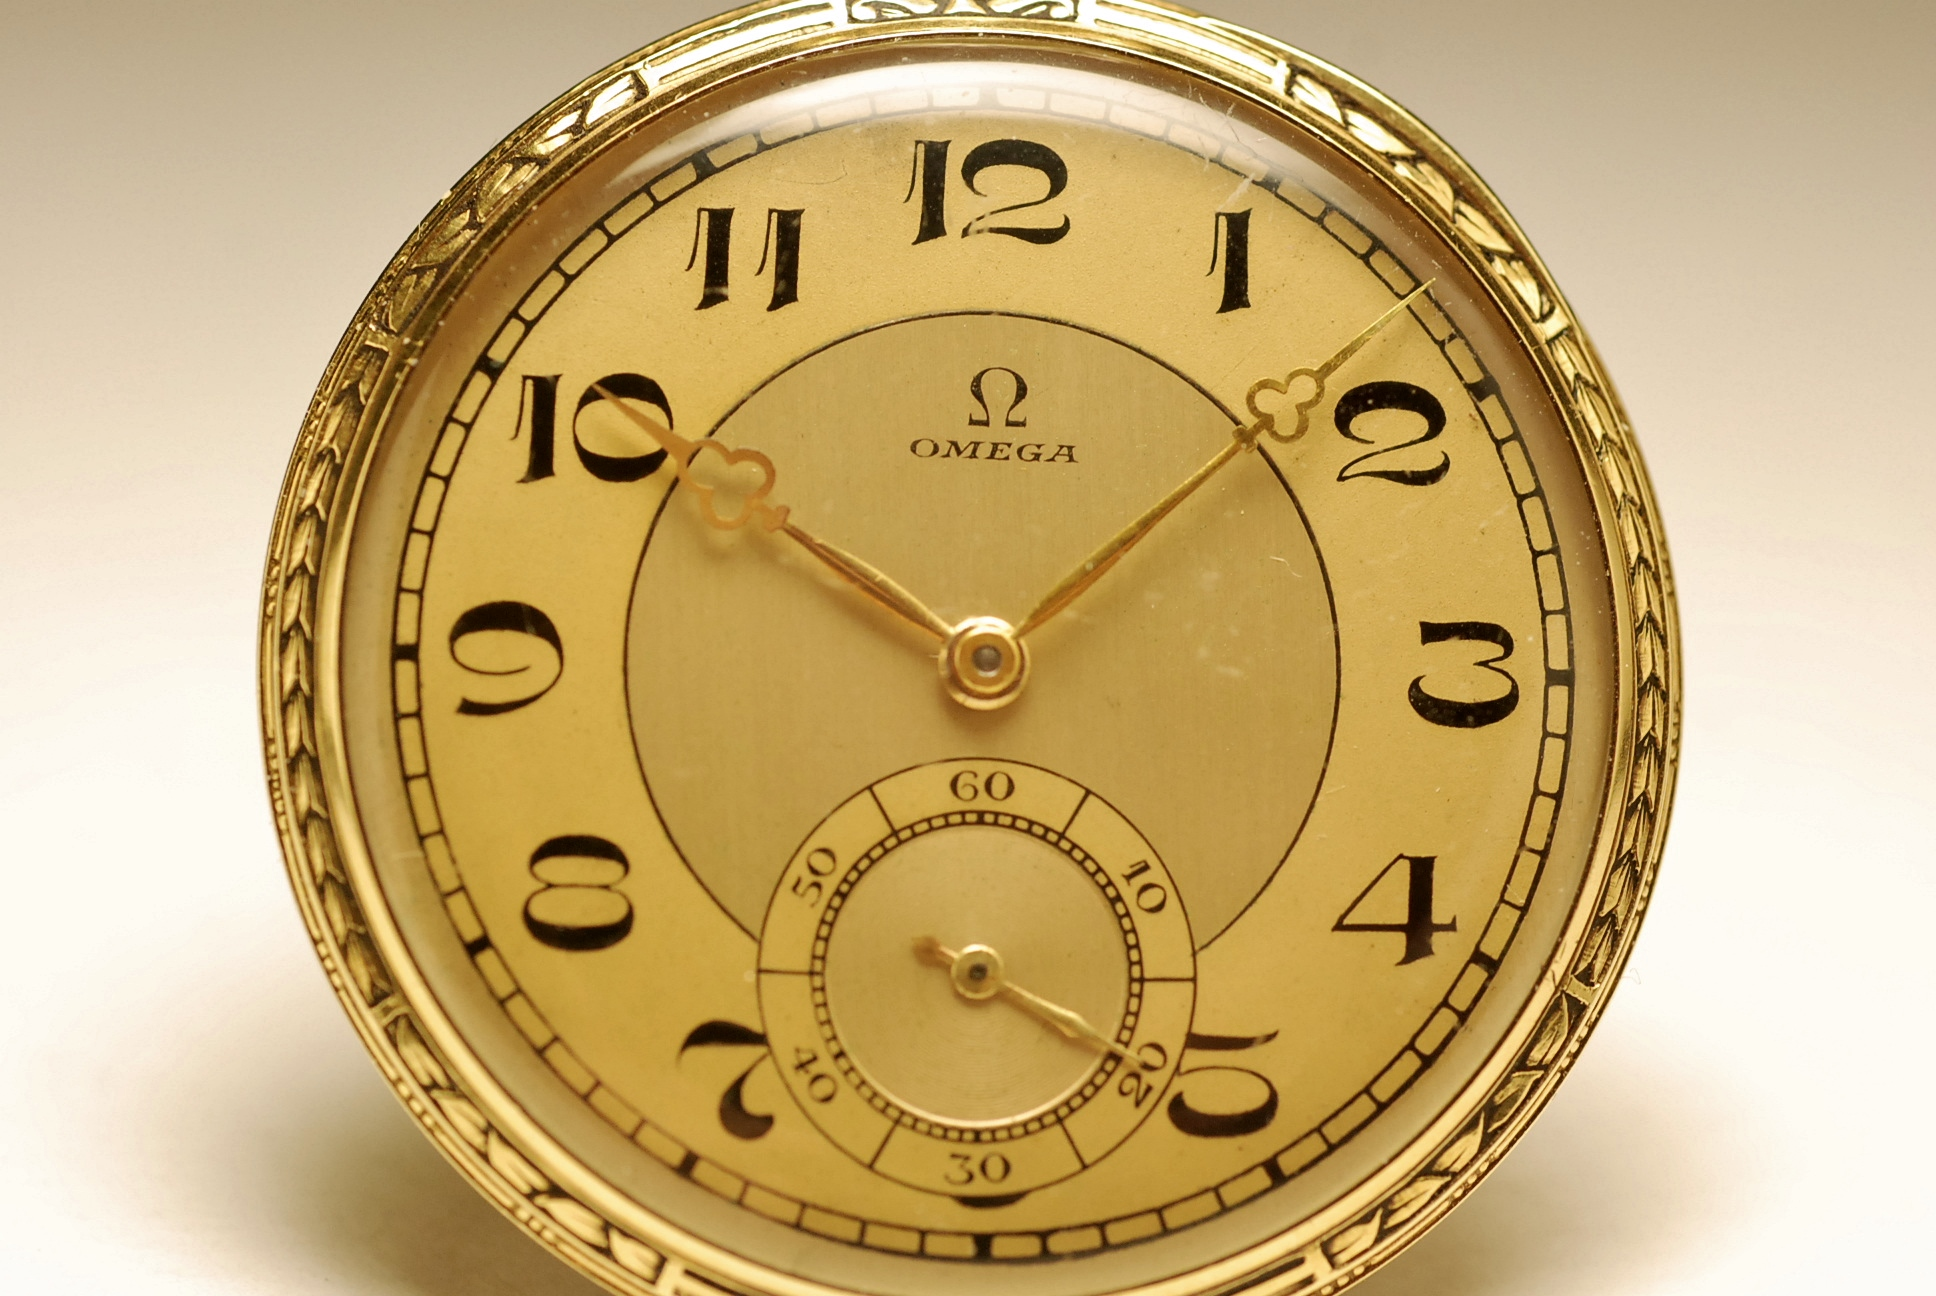 montre ancienne gousset omega chronometre en or 18k 1920 solid gold pocket watch ebay. Black Bedroom Furniture Sets. Home Design Ideas